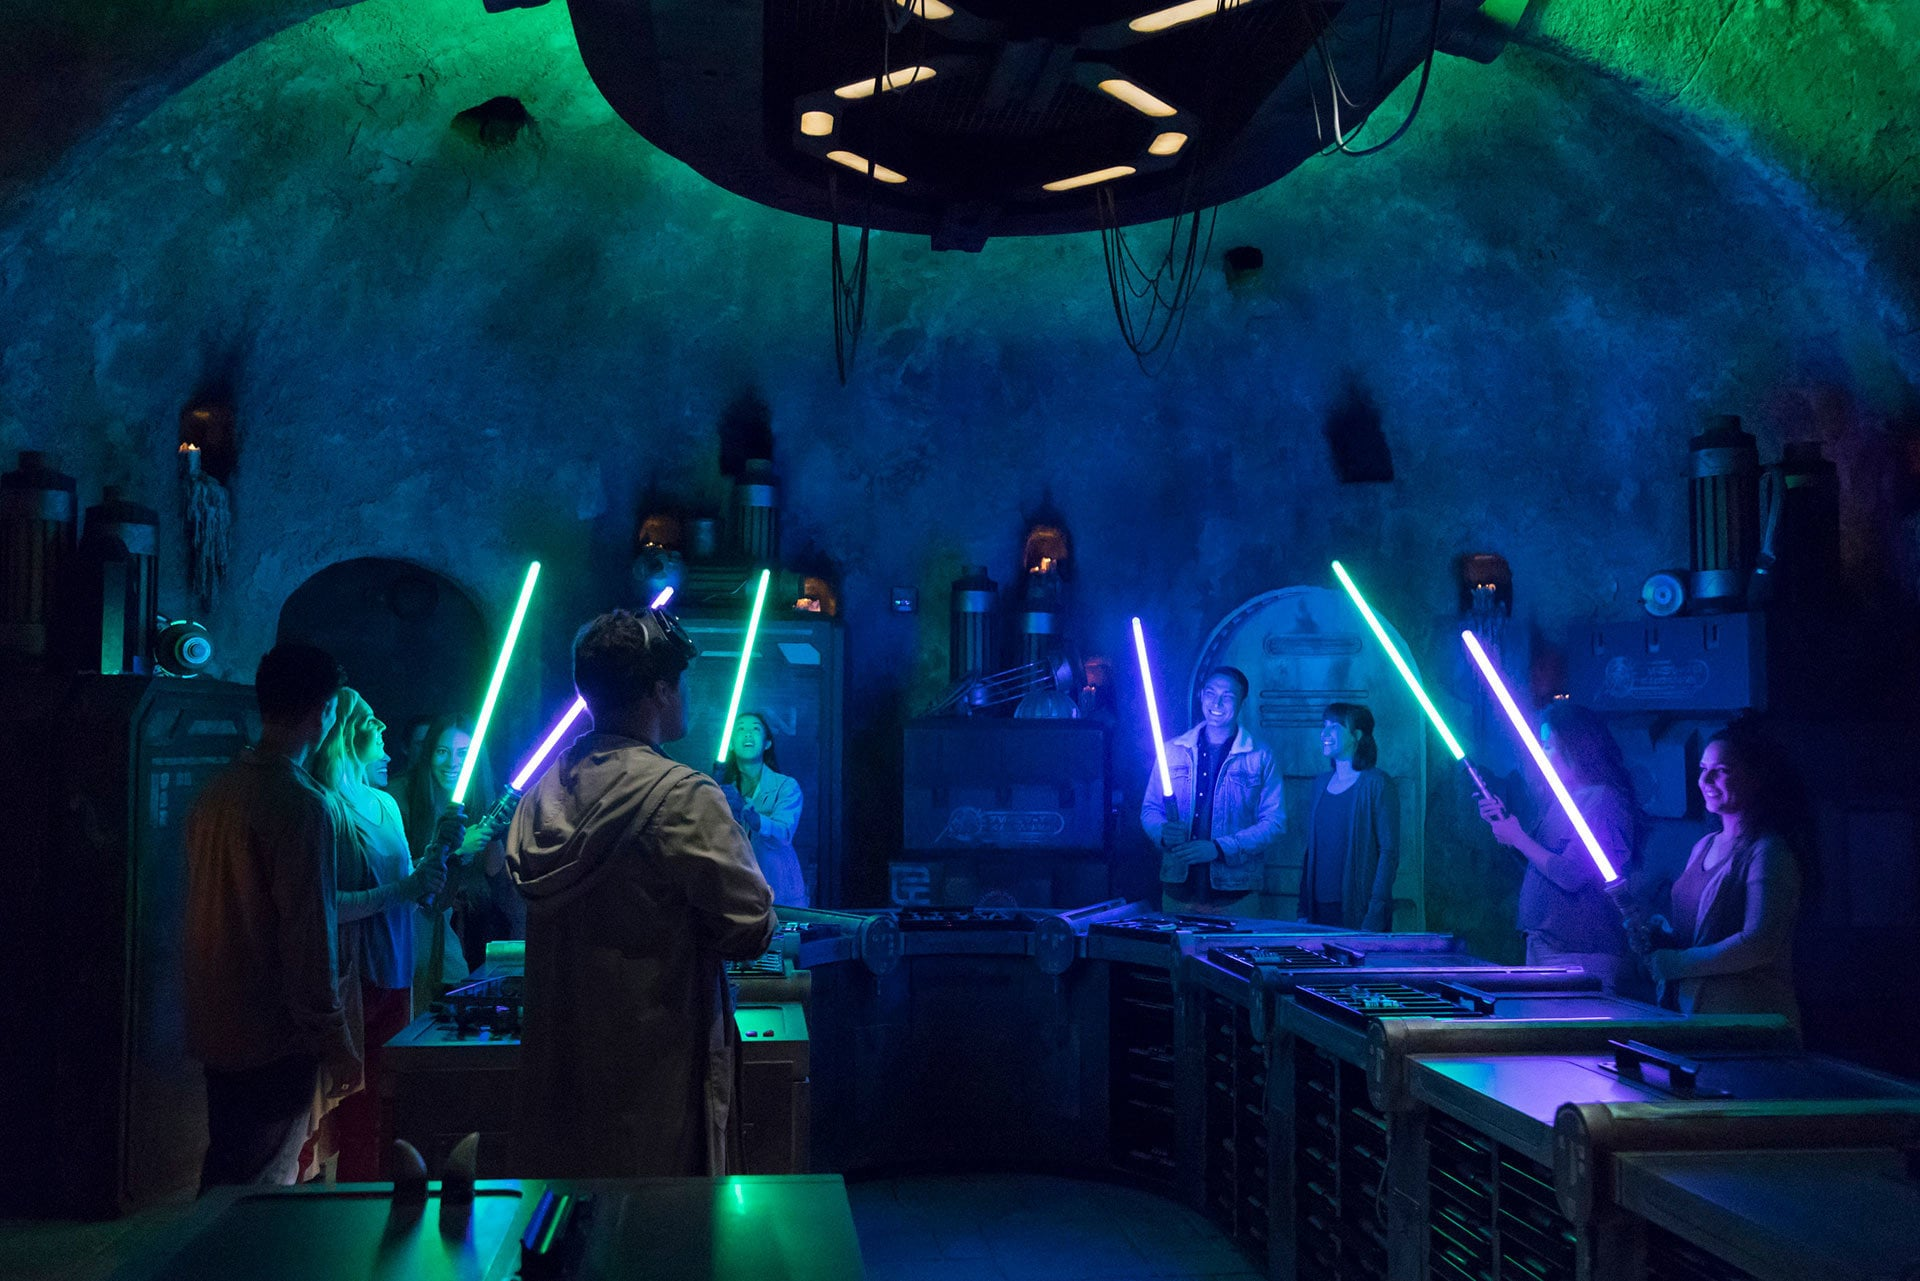 At Savi's Workshop, guests will have the opportunity to customize and craft their own lightsabers. In this exclusive experience, guests will feel like a Jedi as they build these elegant weapons from a more civilised age.